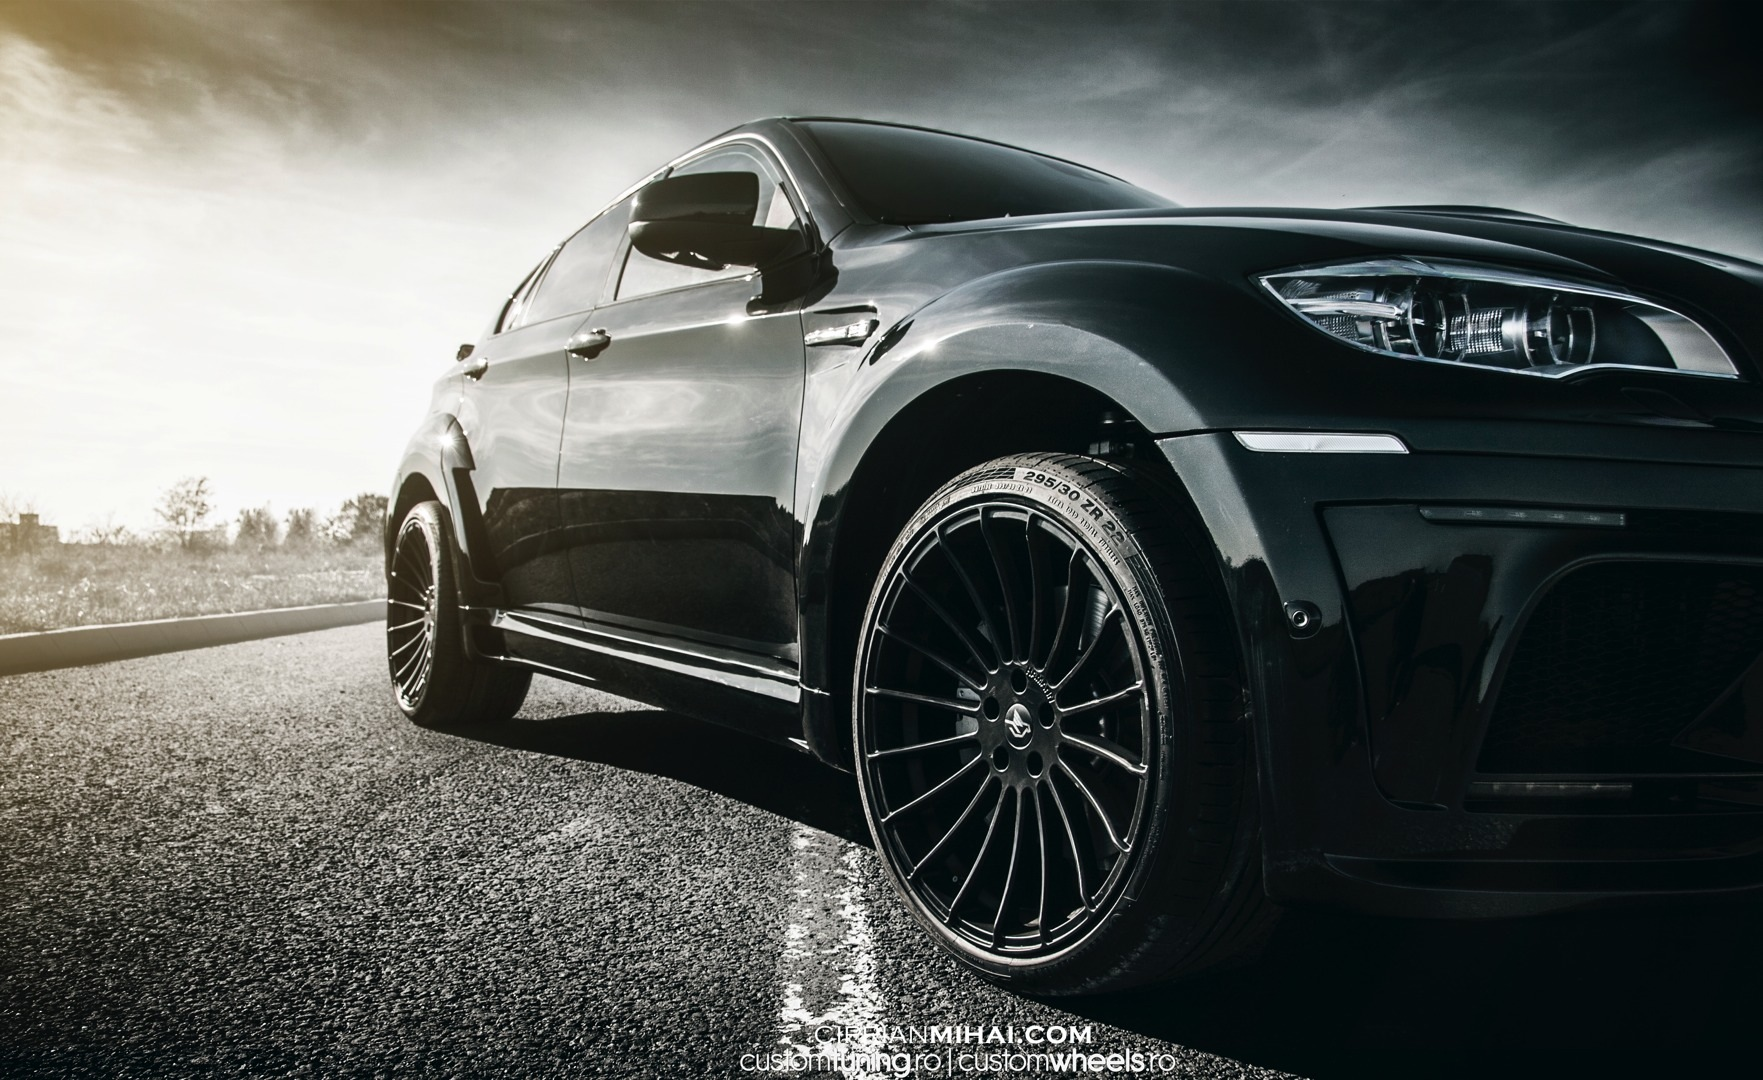 Hp Full Hd Wallpaper Hamann Reveals Tycoon Evo Kit For Bmw X6 M50d Autoevolution